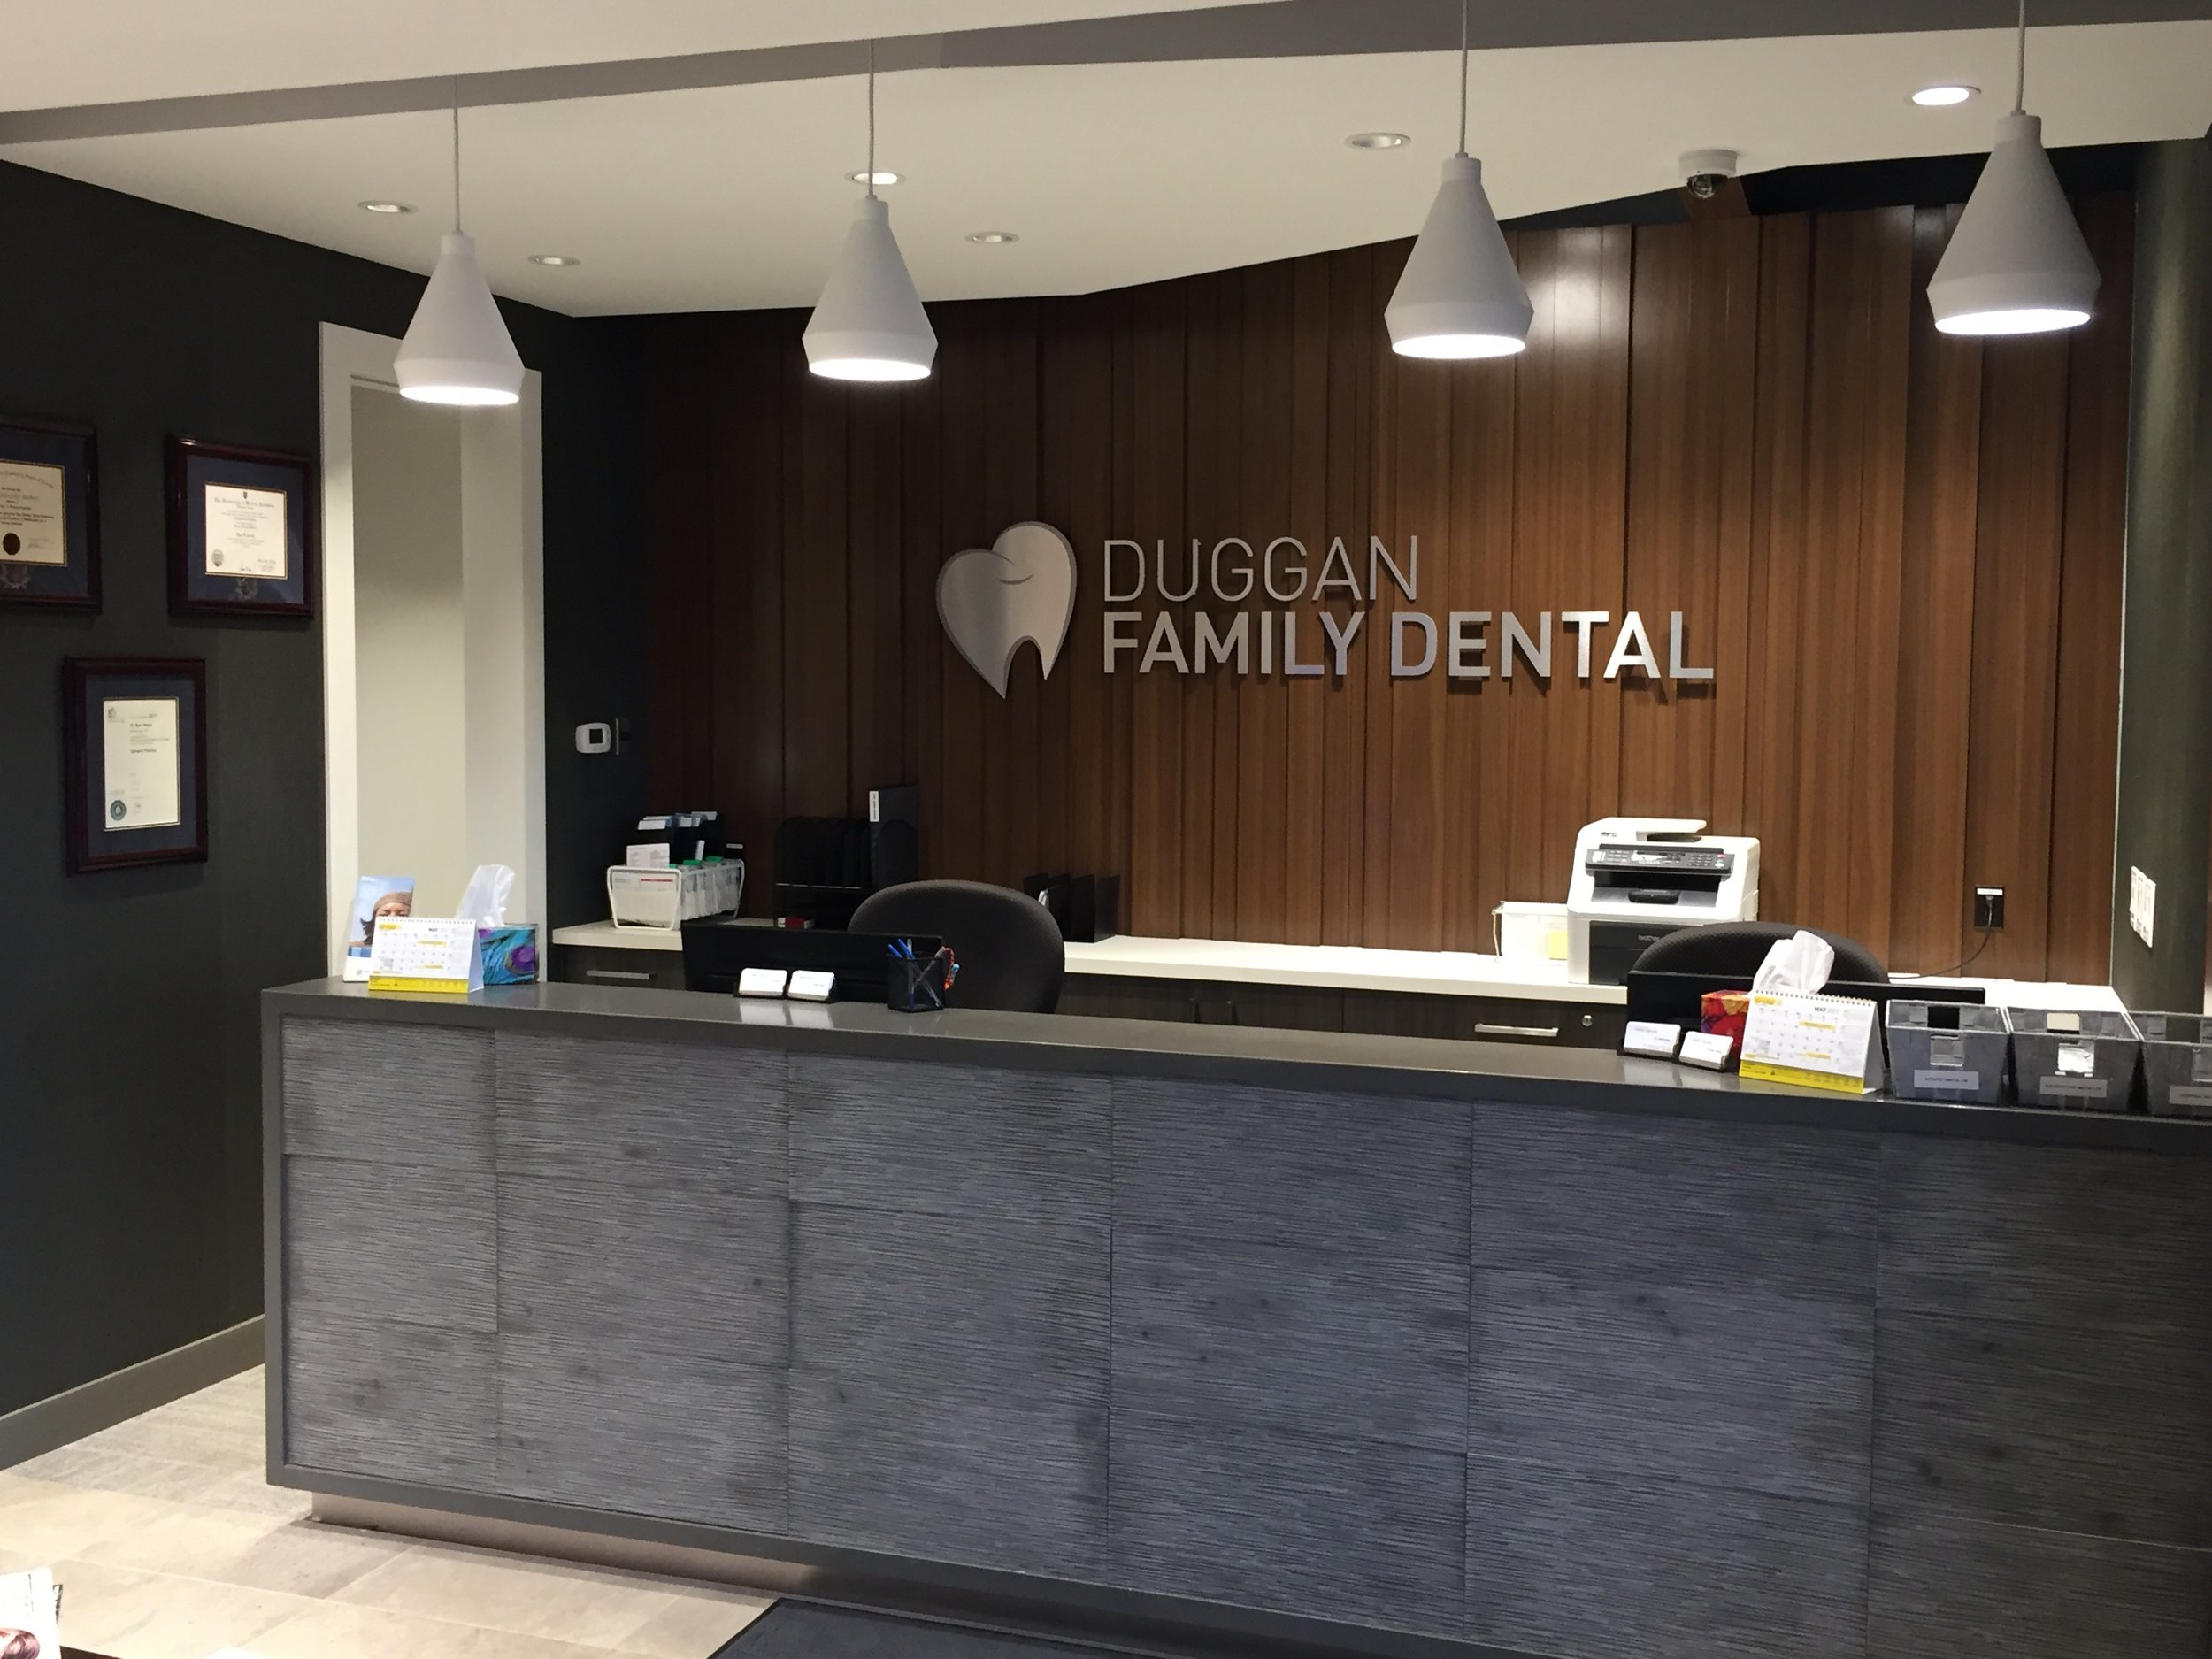 Job Name:  Duggan Dental   Contractor:  Keller Construction   Description:  This project was completed in multiple phases in the span of just over a month. Duggan Dental received an injection of new designs and layouts throughout its space, while continuing to remain open and serve their patients.